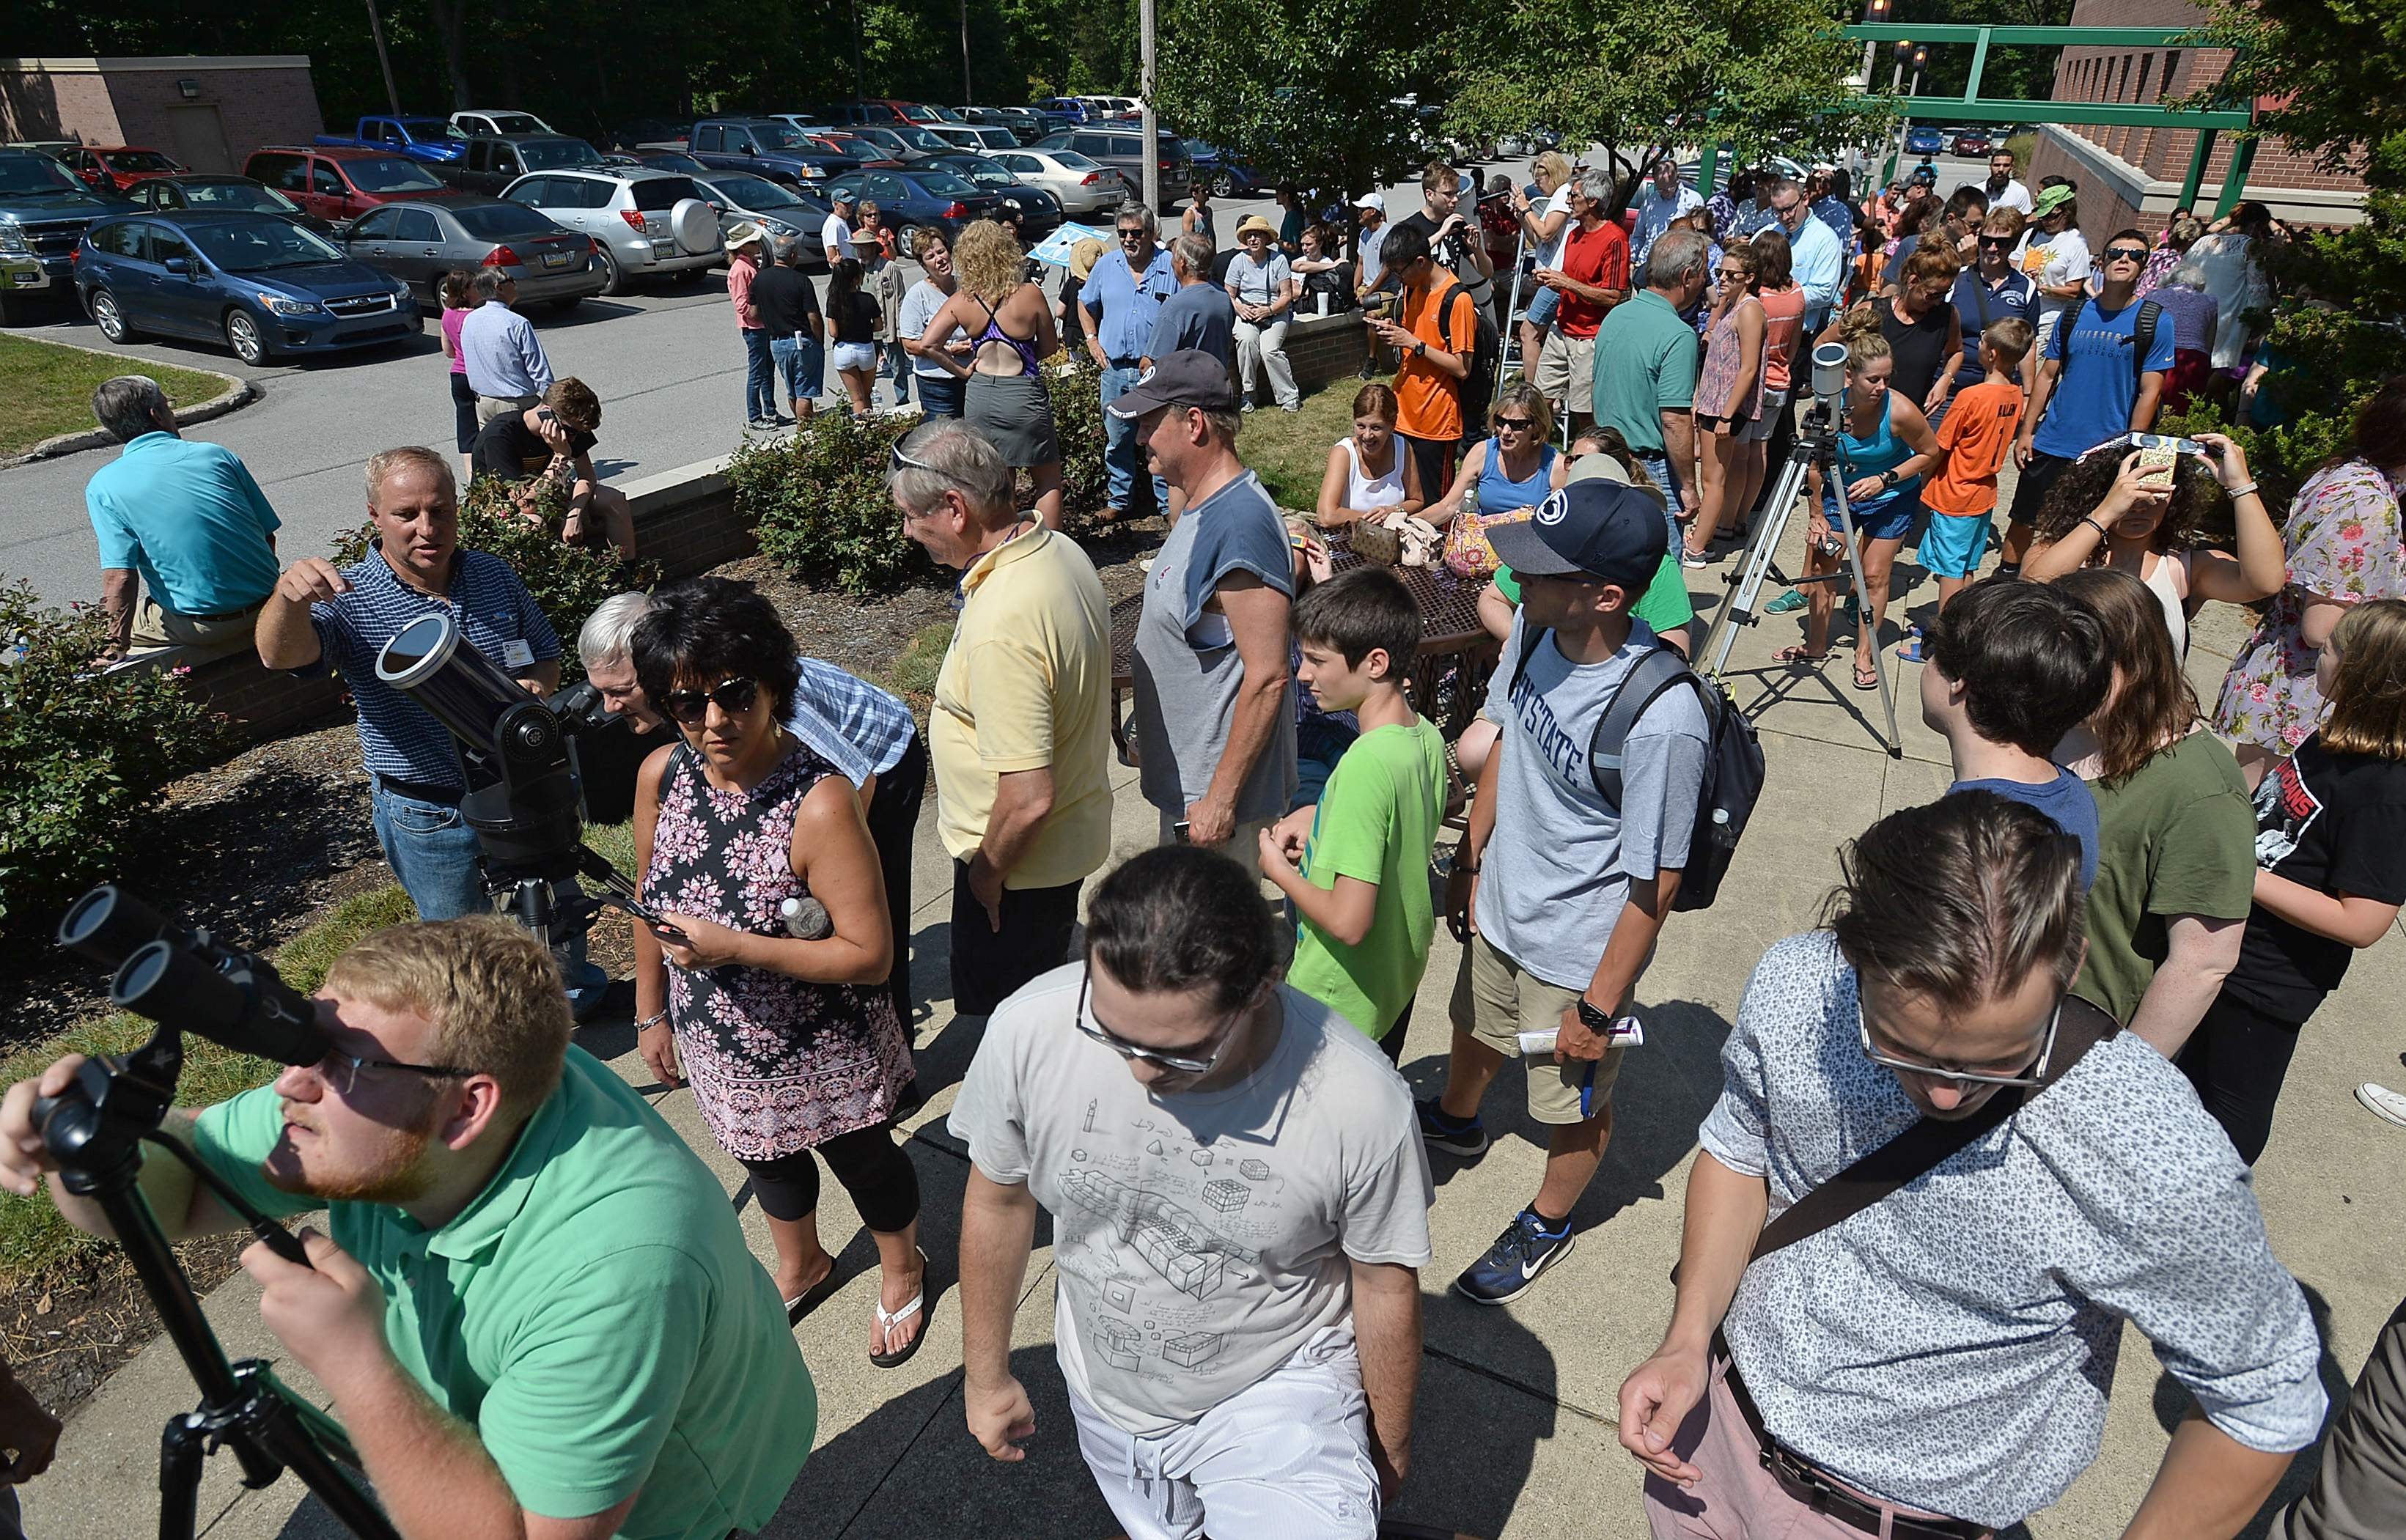 Hundreds turned out Aug. 21 at an eclipse-viewing party held at Penn State Behrend in Harborcreek Township, which featured telescopes fitted with solar filters available for viewing the partial eclipse. [CHRISTOPHER MILLETTE/ERIE TIMES-NEWS]